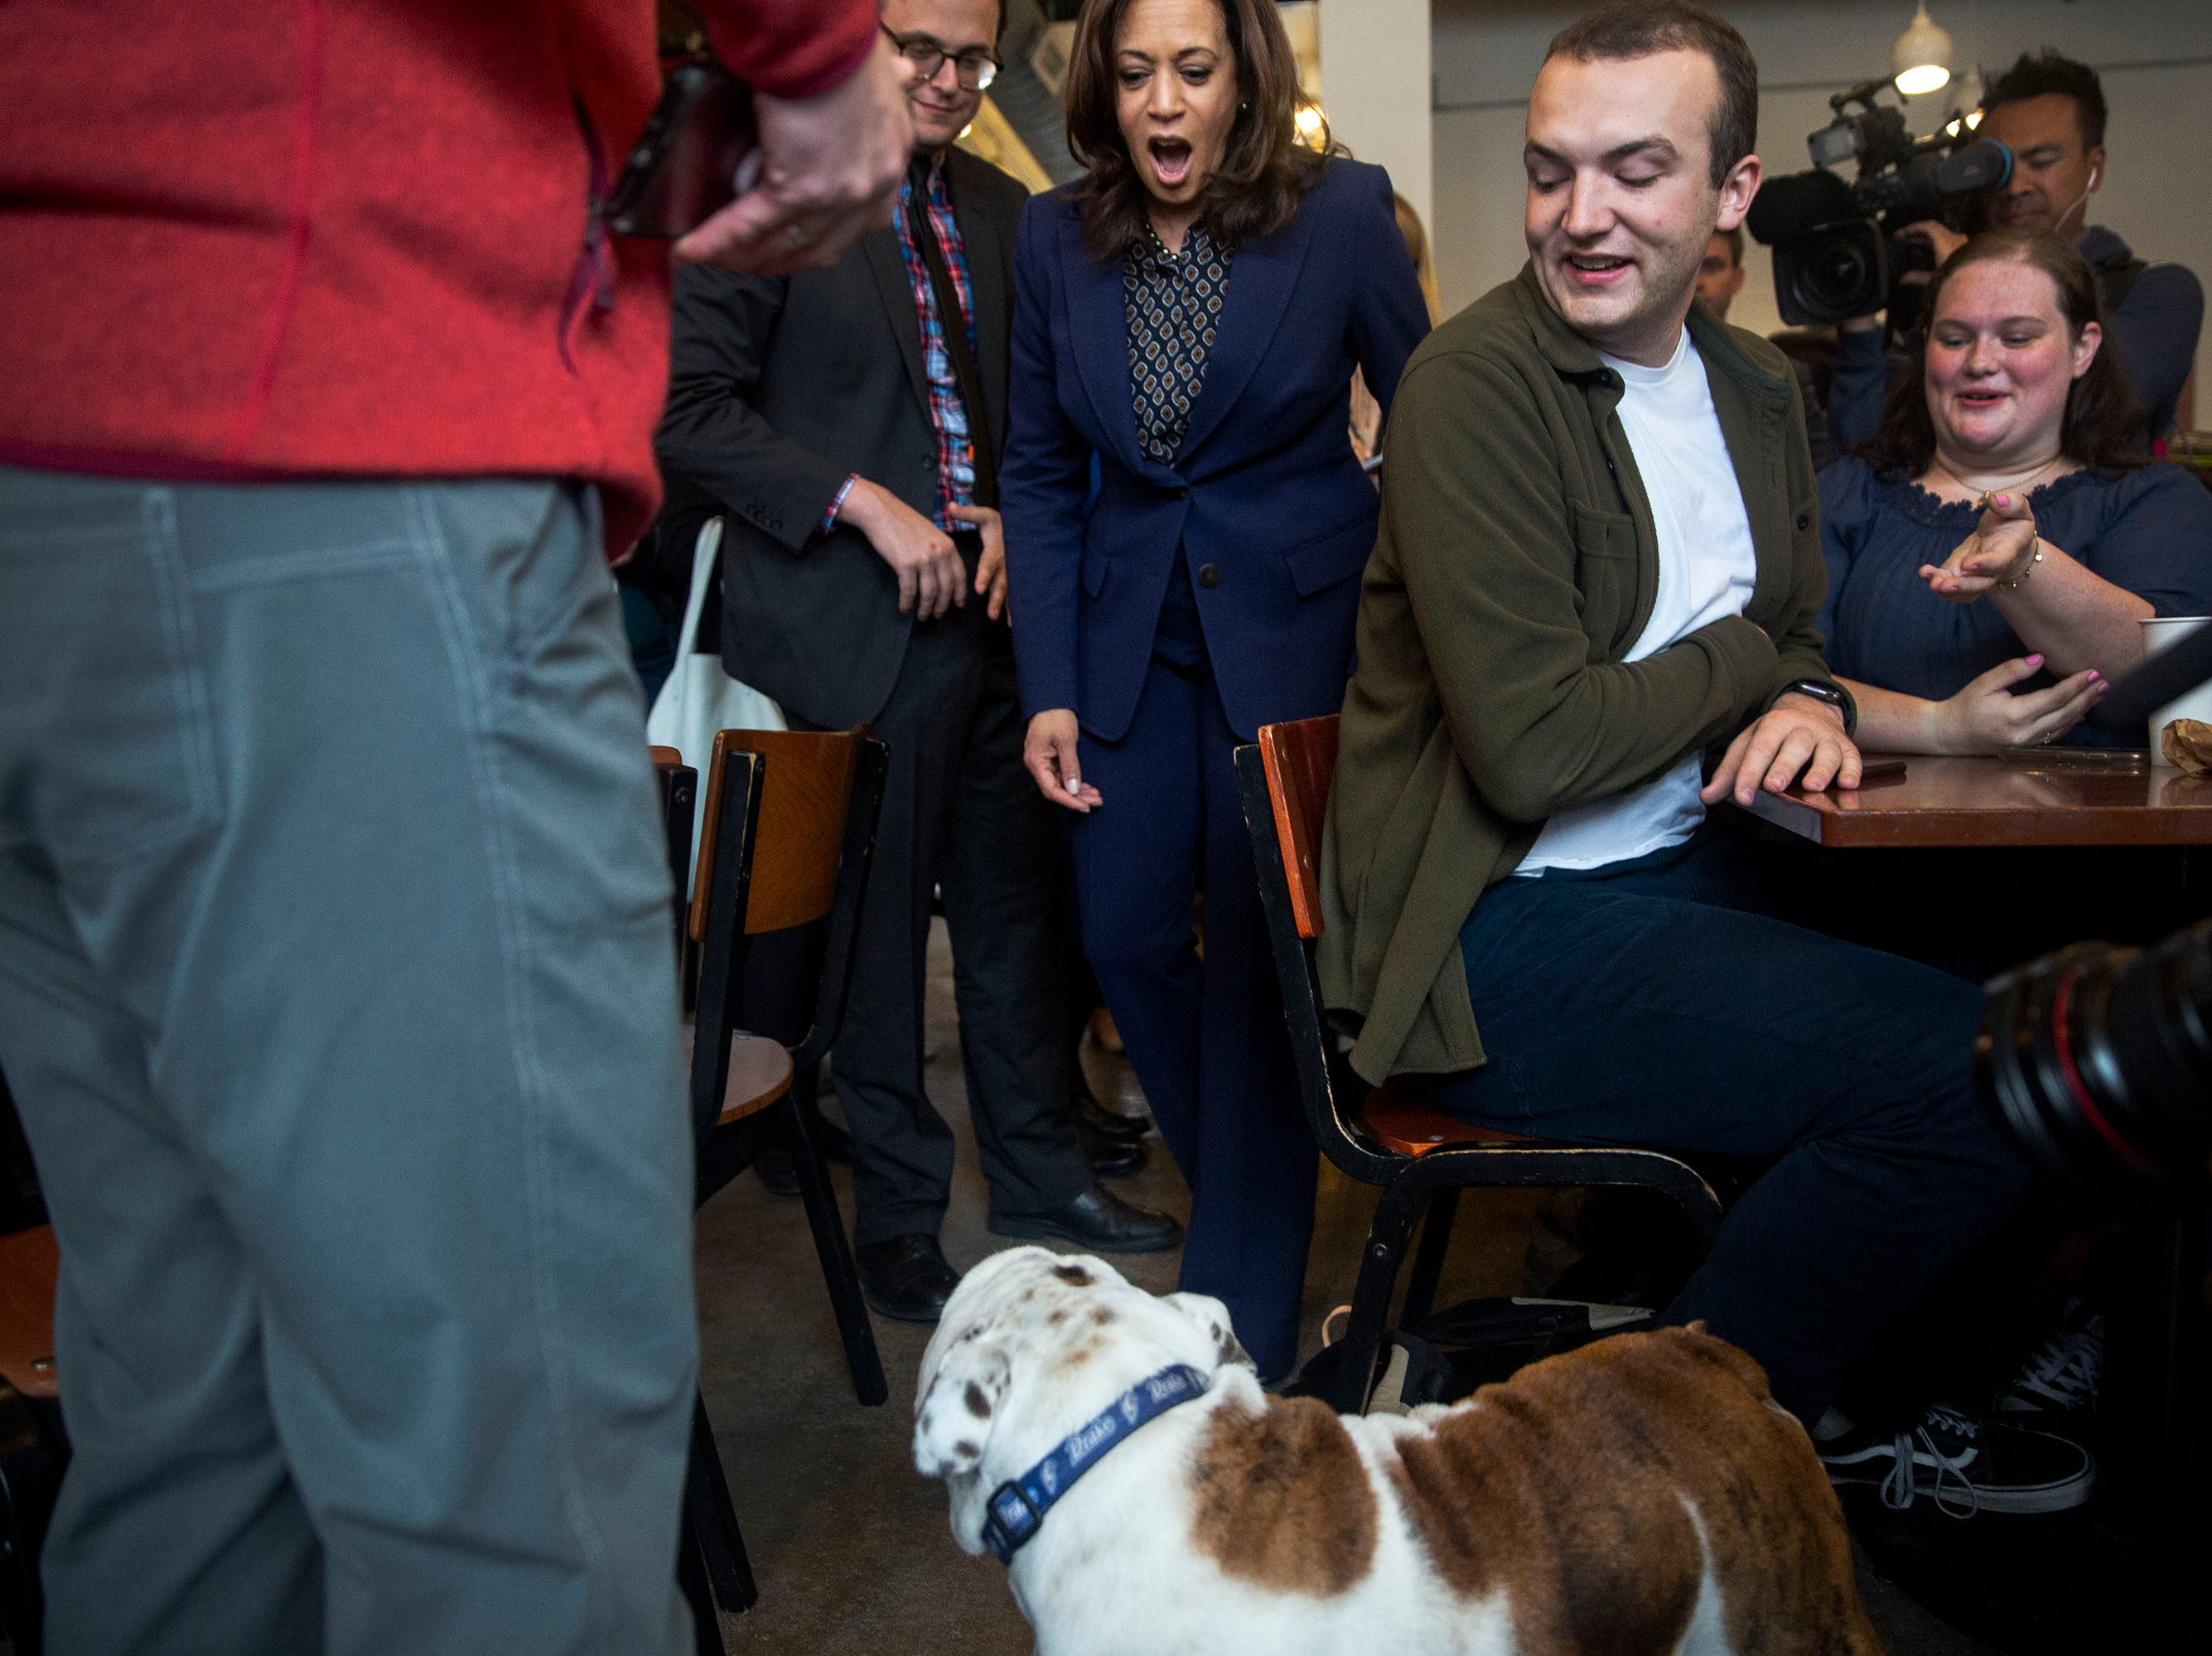 Sen. Kamala Harris, D-CA, meets Griff, the living mascot of Drake University while making a campaign stop on Thursday, April 11, 2019, to Mars Cafe in Des Moines' Drake neighborhood.